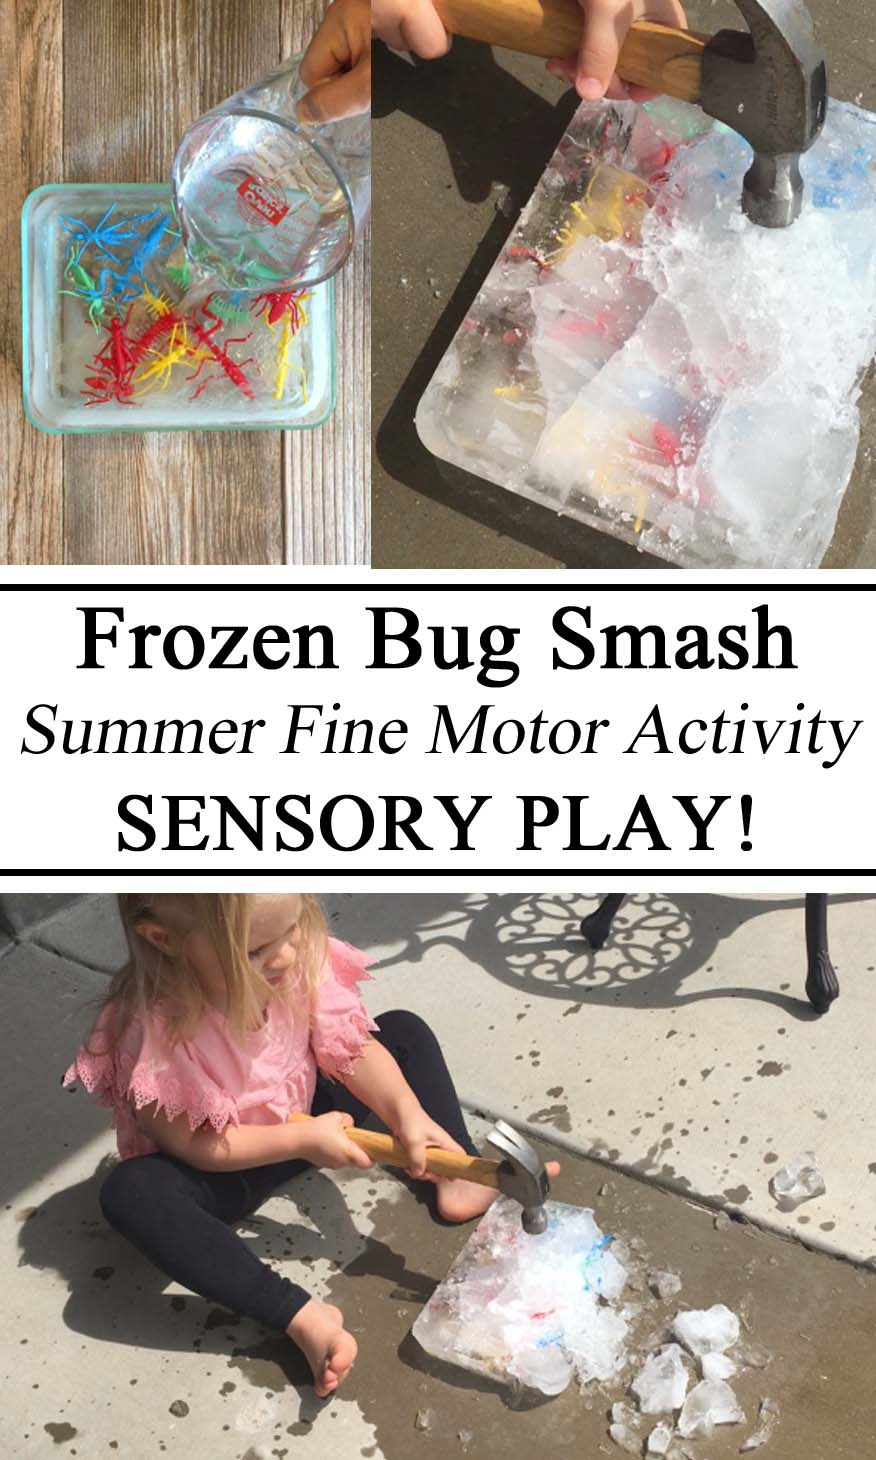 Hands on Activity, Frozen Fun, Summer Activity, Preschool Activity, Learning, Educational, Homeschool, Homeschooling, Ice, Frozen, Summer Vacation, Stay at Home, Inspiration, Montessori, Homeschool, Homeschooling, Resource, Ideas